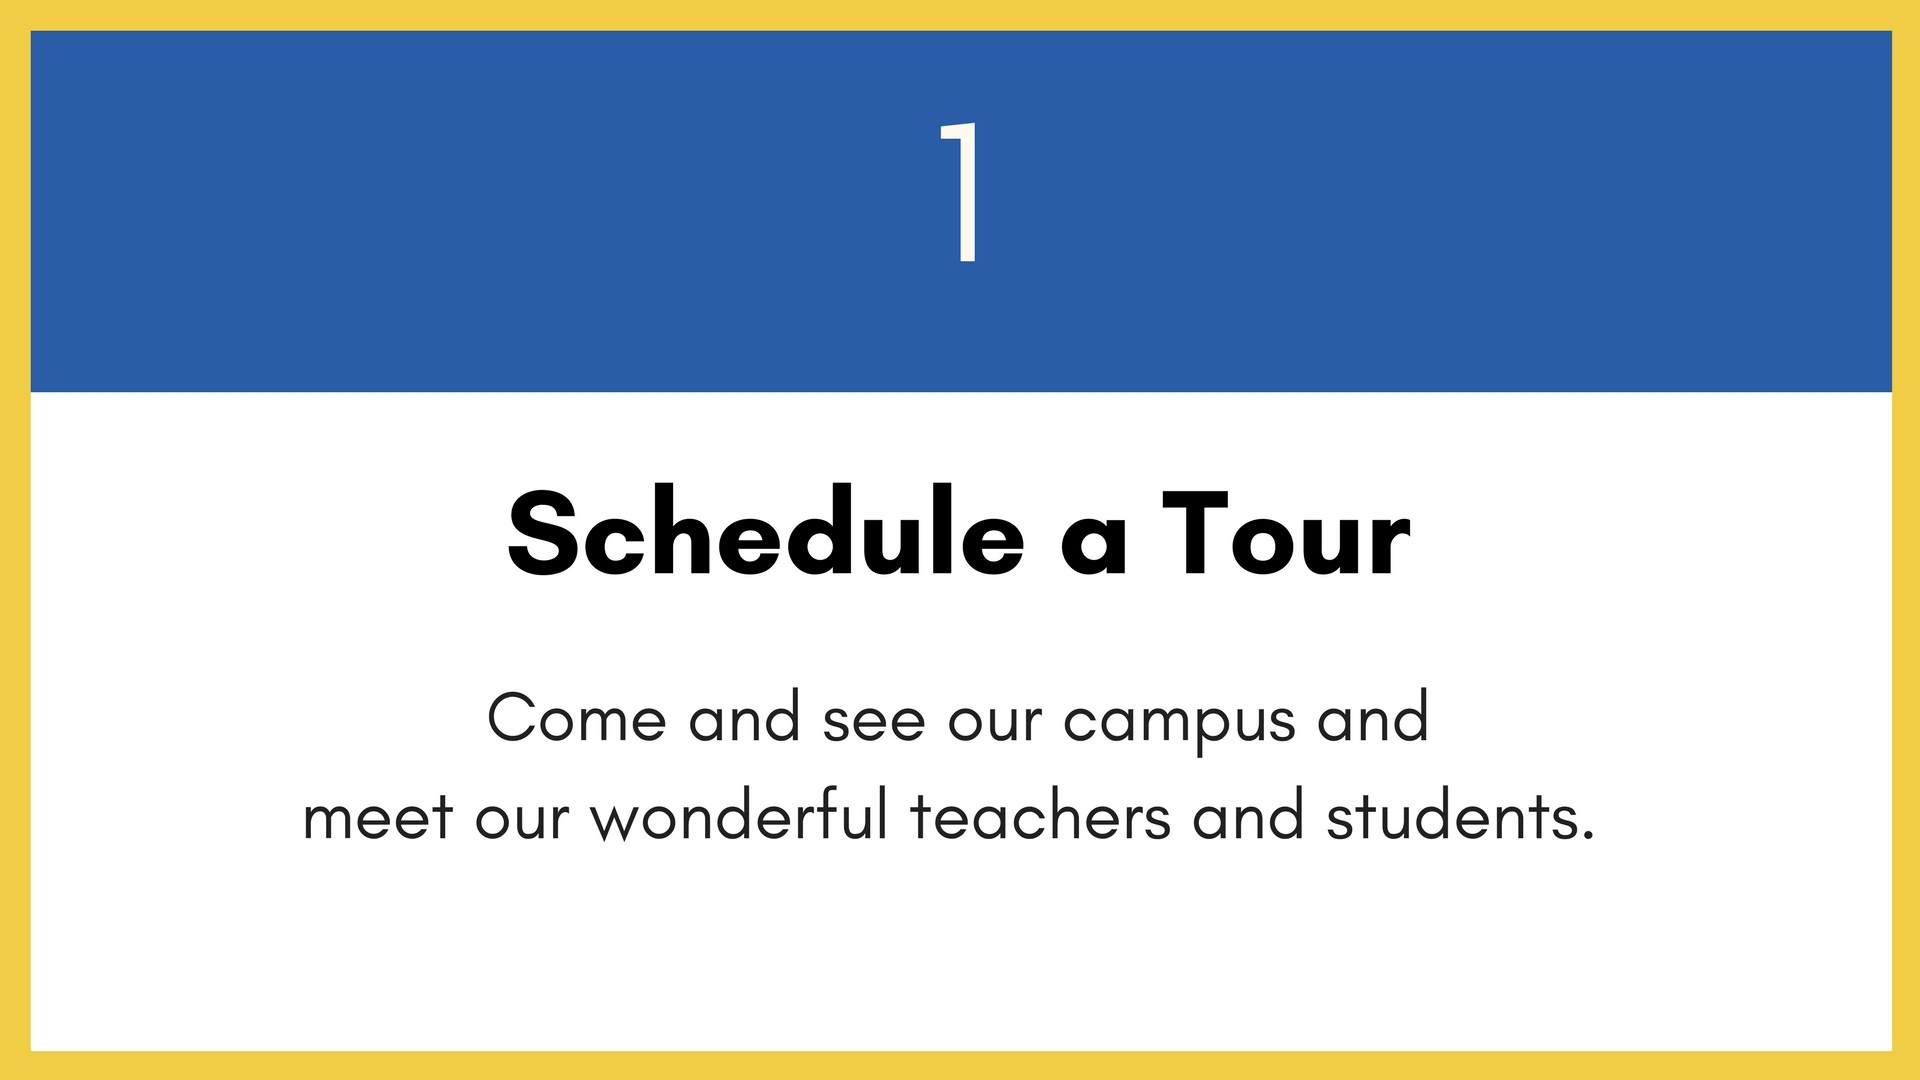 Step 1 - Schedule a Tour